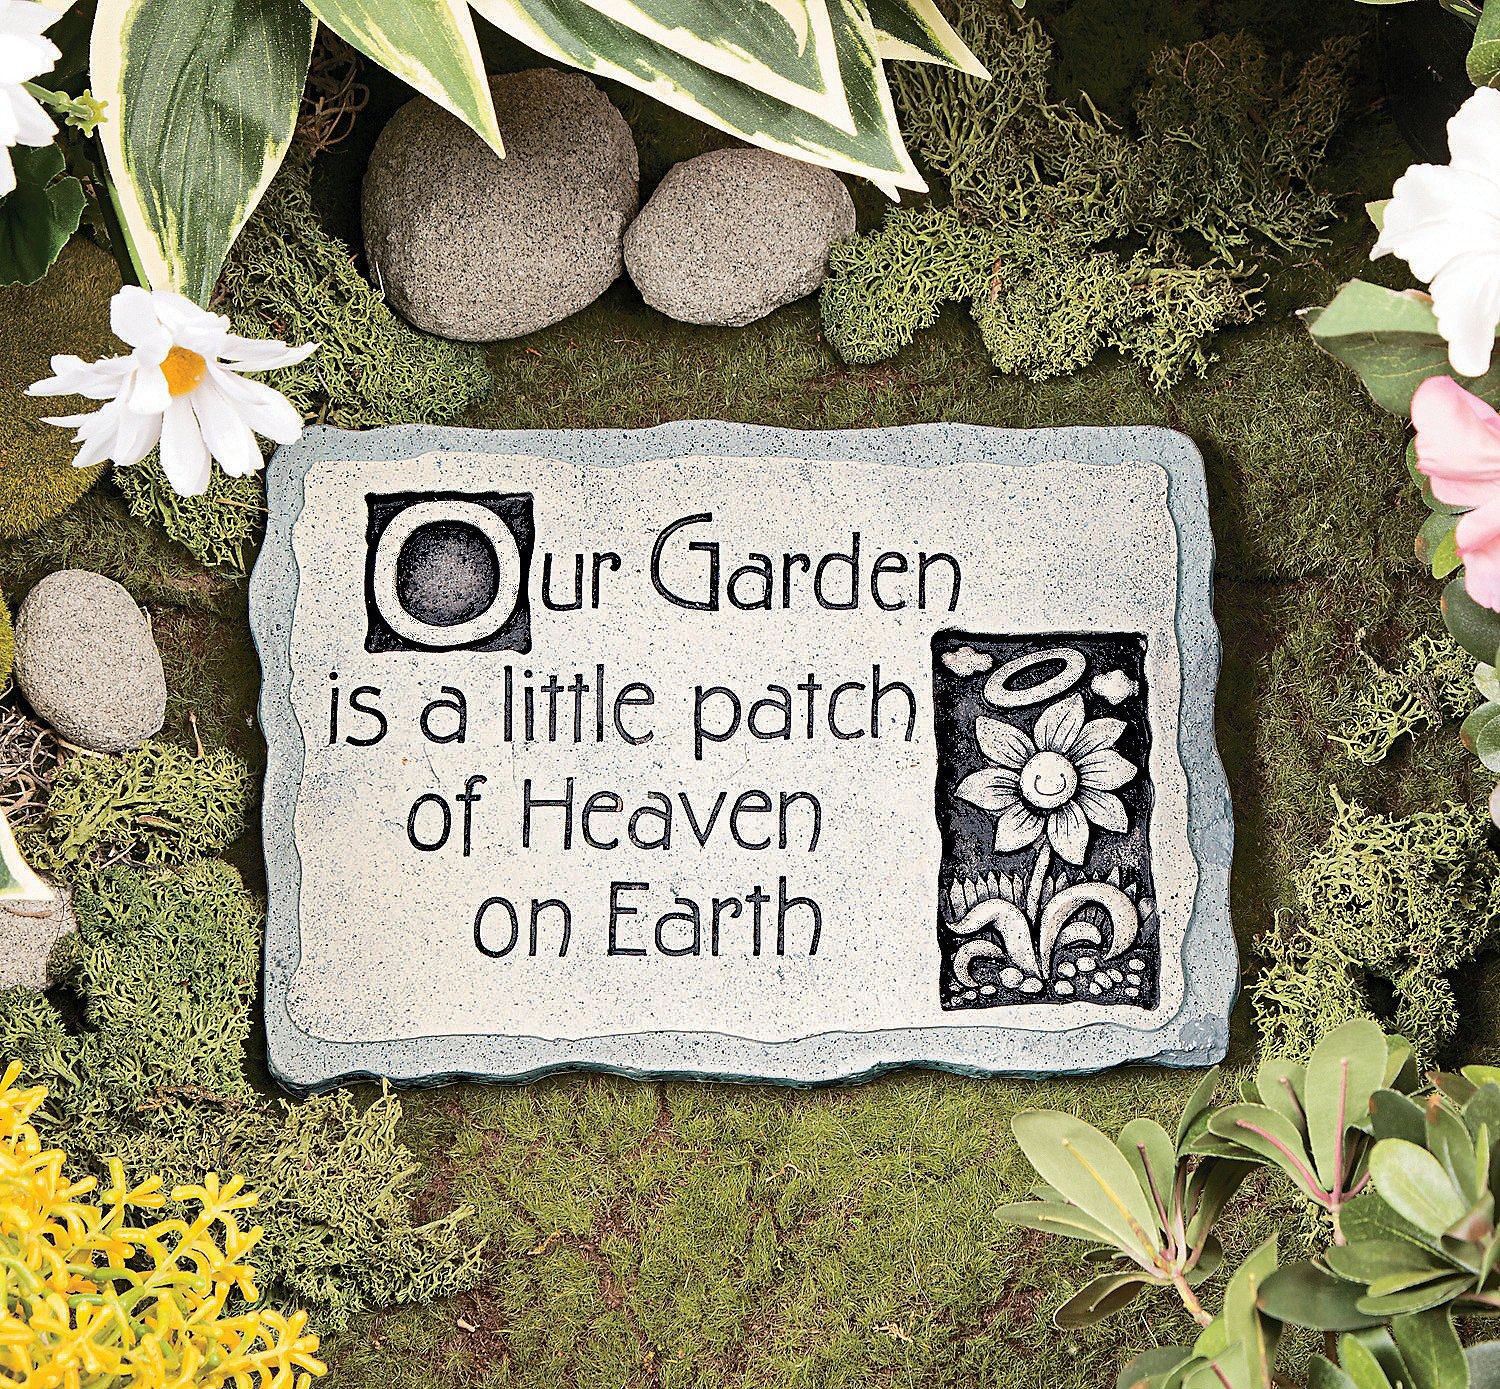 for walkway embellishment stepping rhartflyzcom walking trends stones garden stone personalized make rhcarehomedecorcom attachment your path pavers backyard